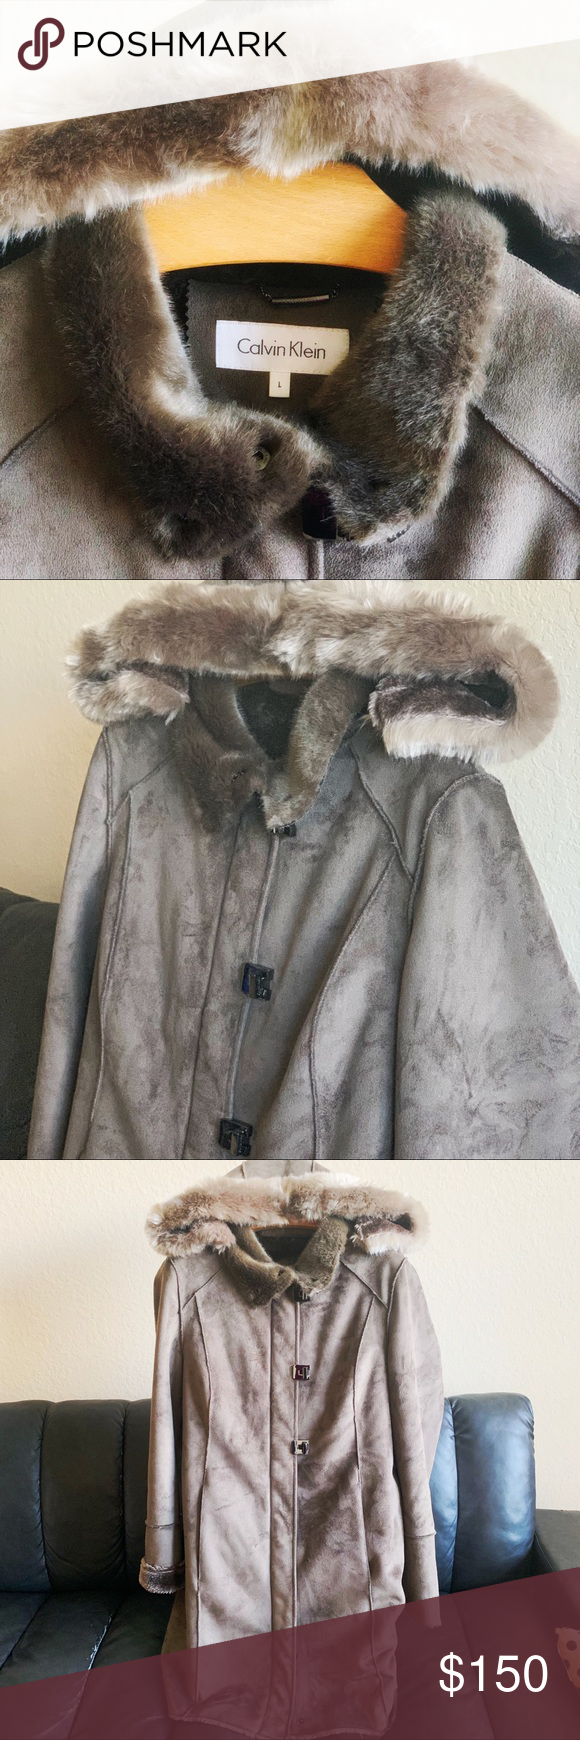 Calvin Klein Faux Fur Coat Never worn New w/o Tags Calvin